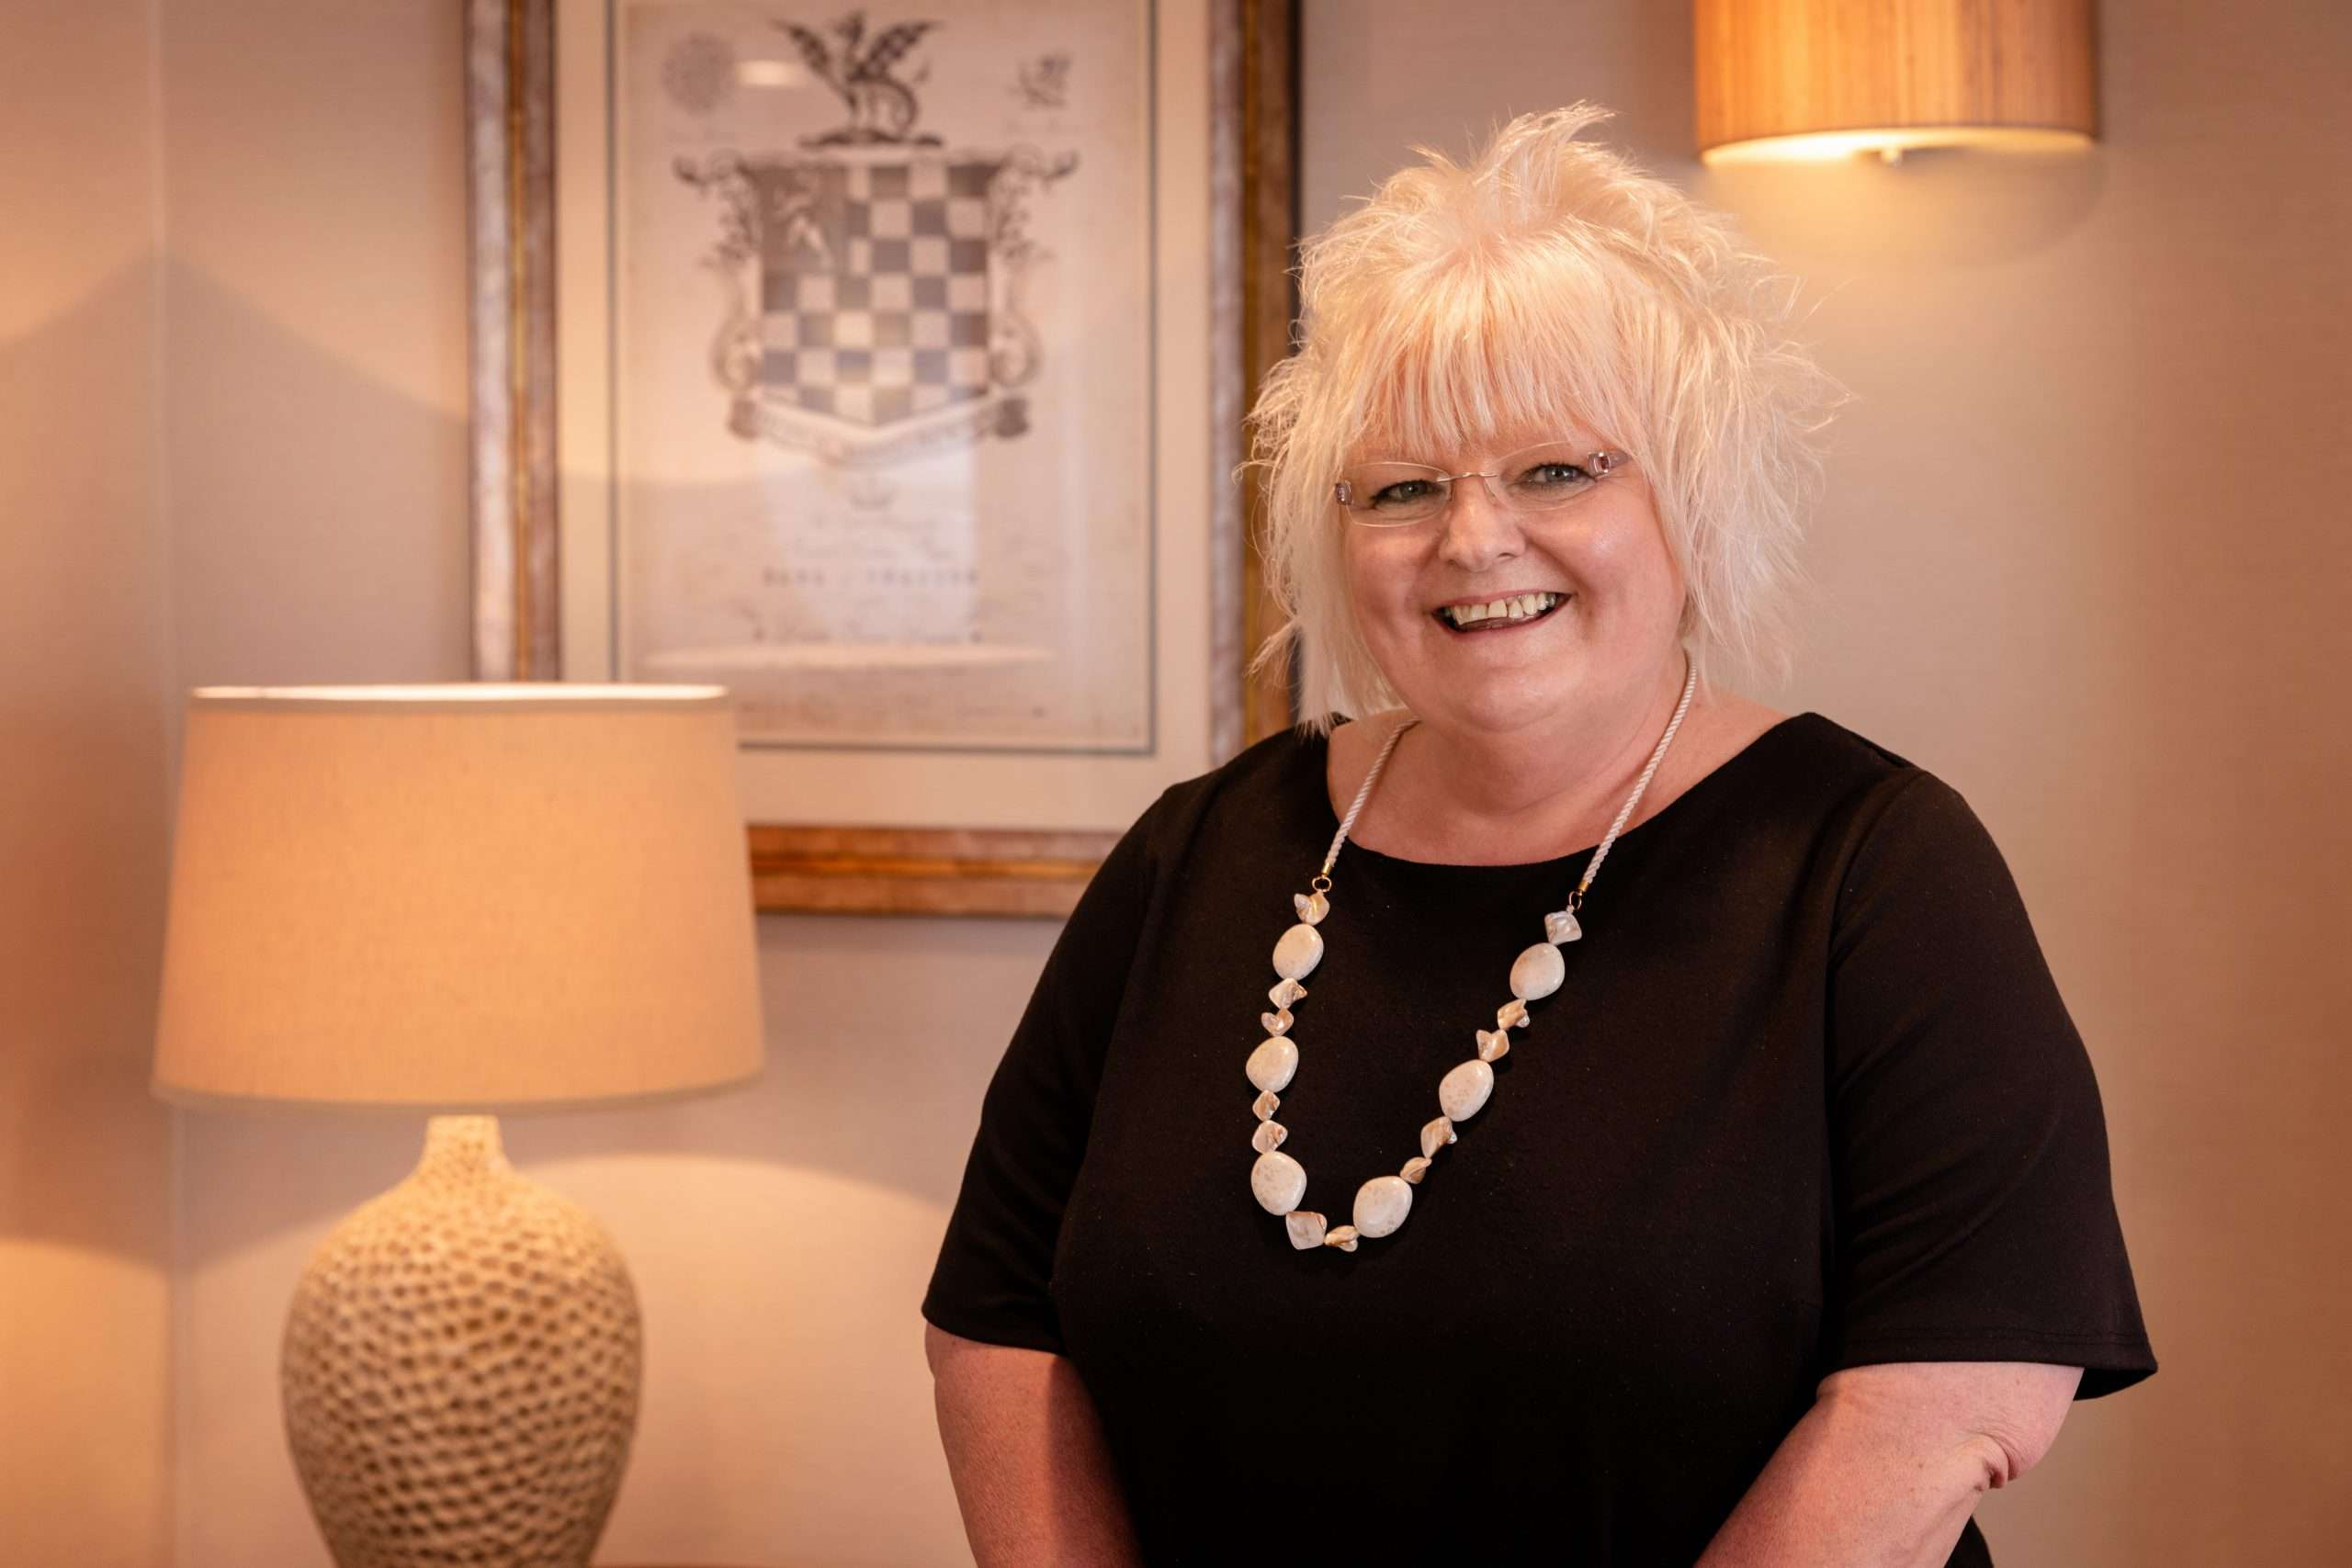 Meet our Care Manager, Denise Williams